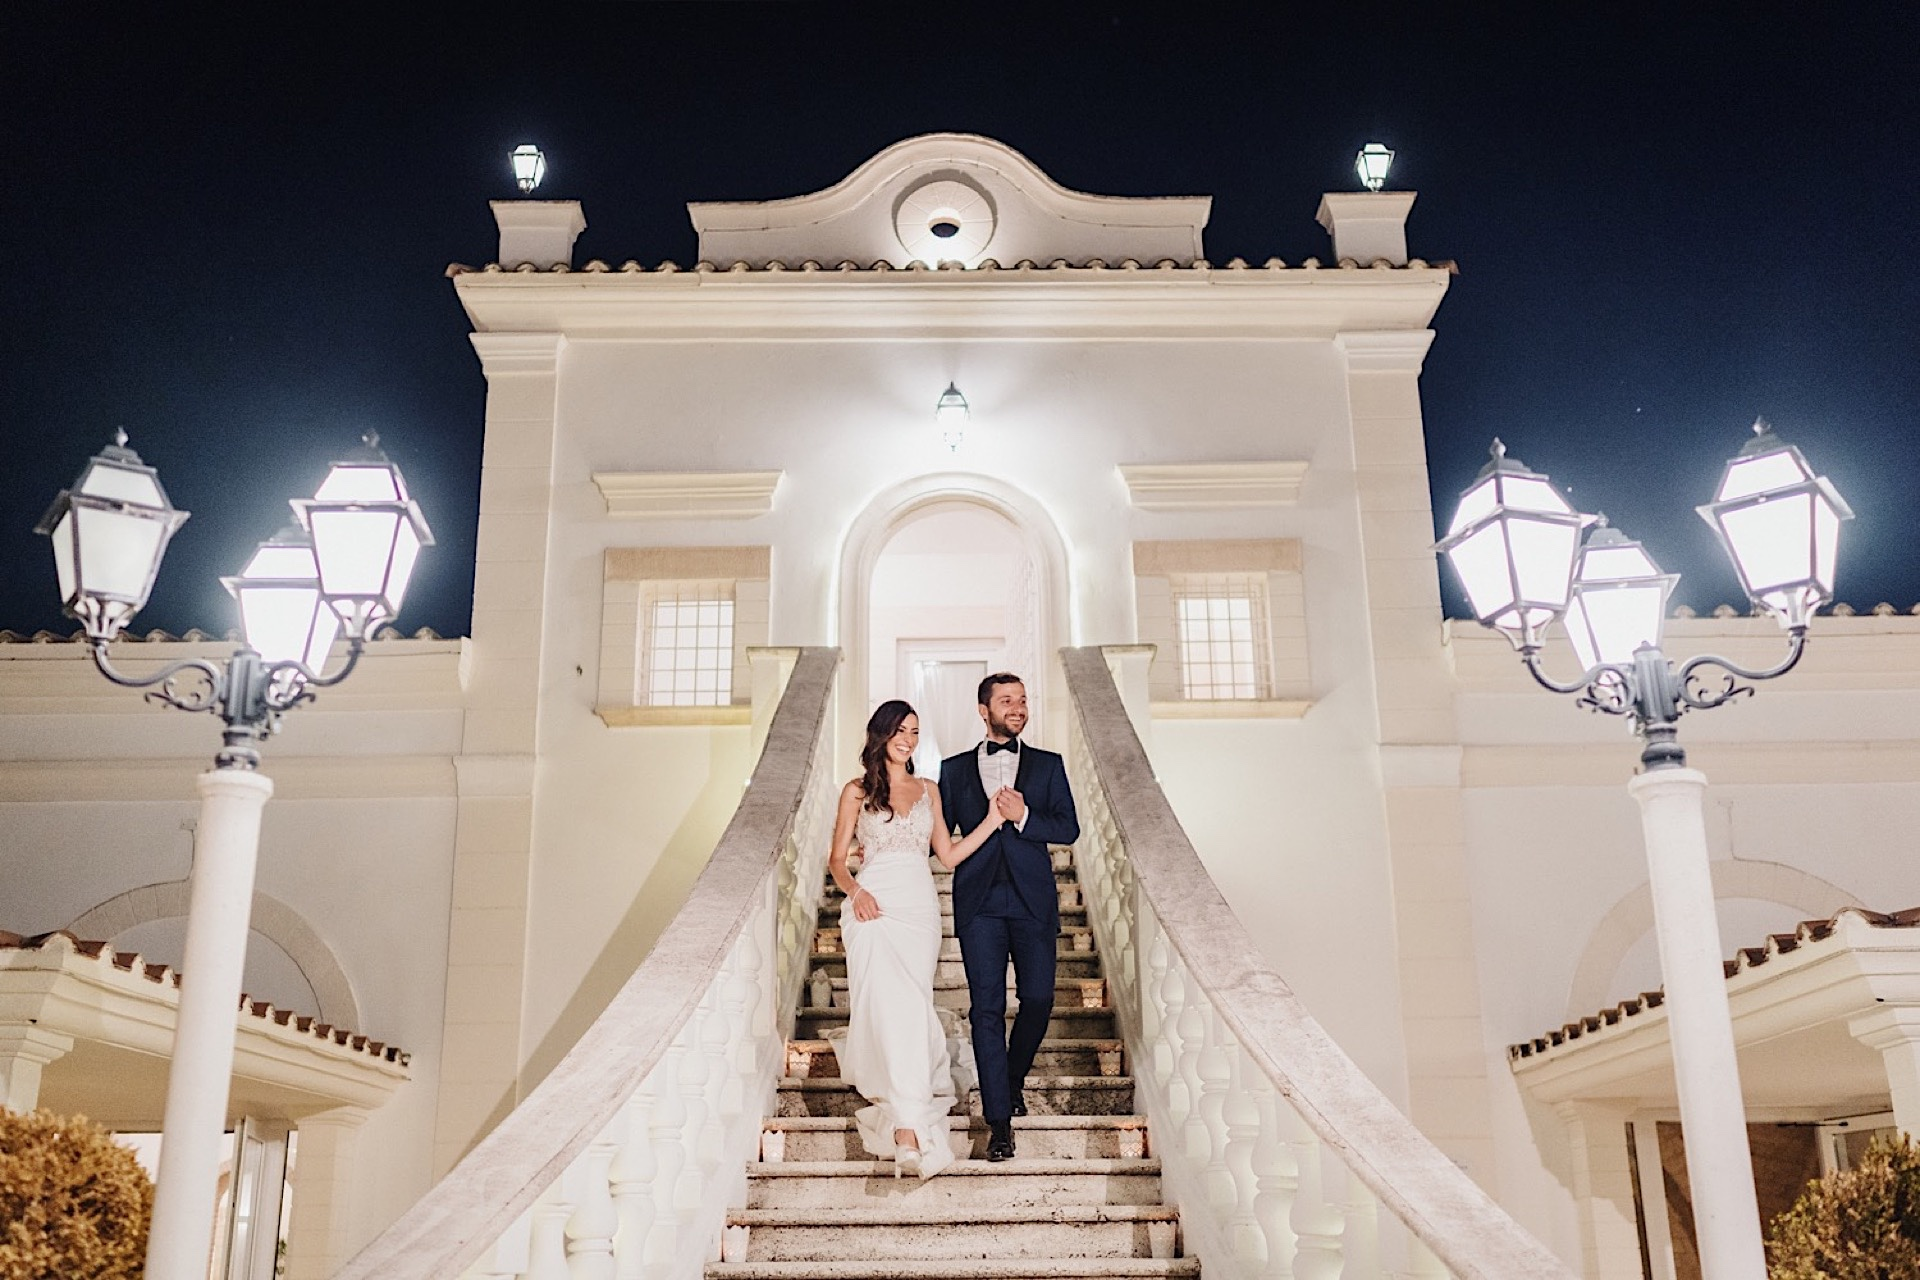 58__DSC9737_torre_san_wedding_giuseppe_angelo_puglia_marriage_chiara_destination_tenimento_pedone_maria_photographer_la